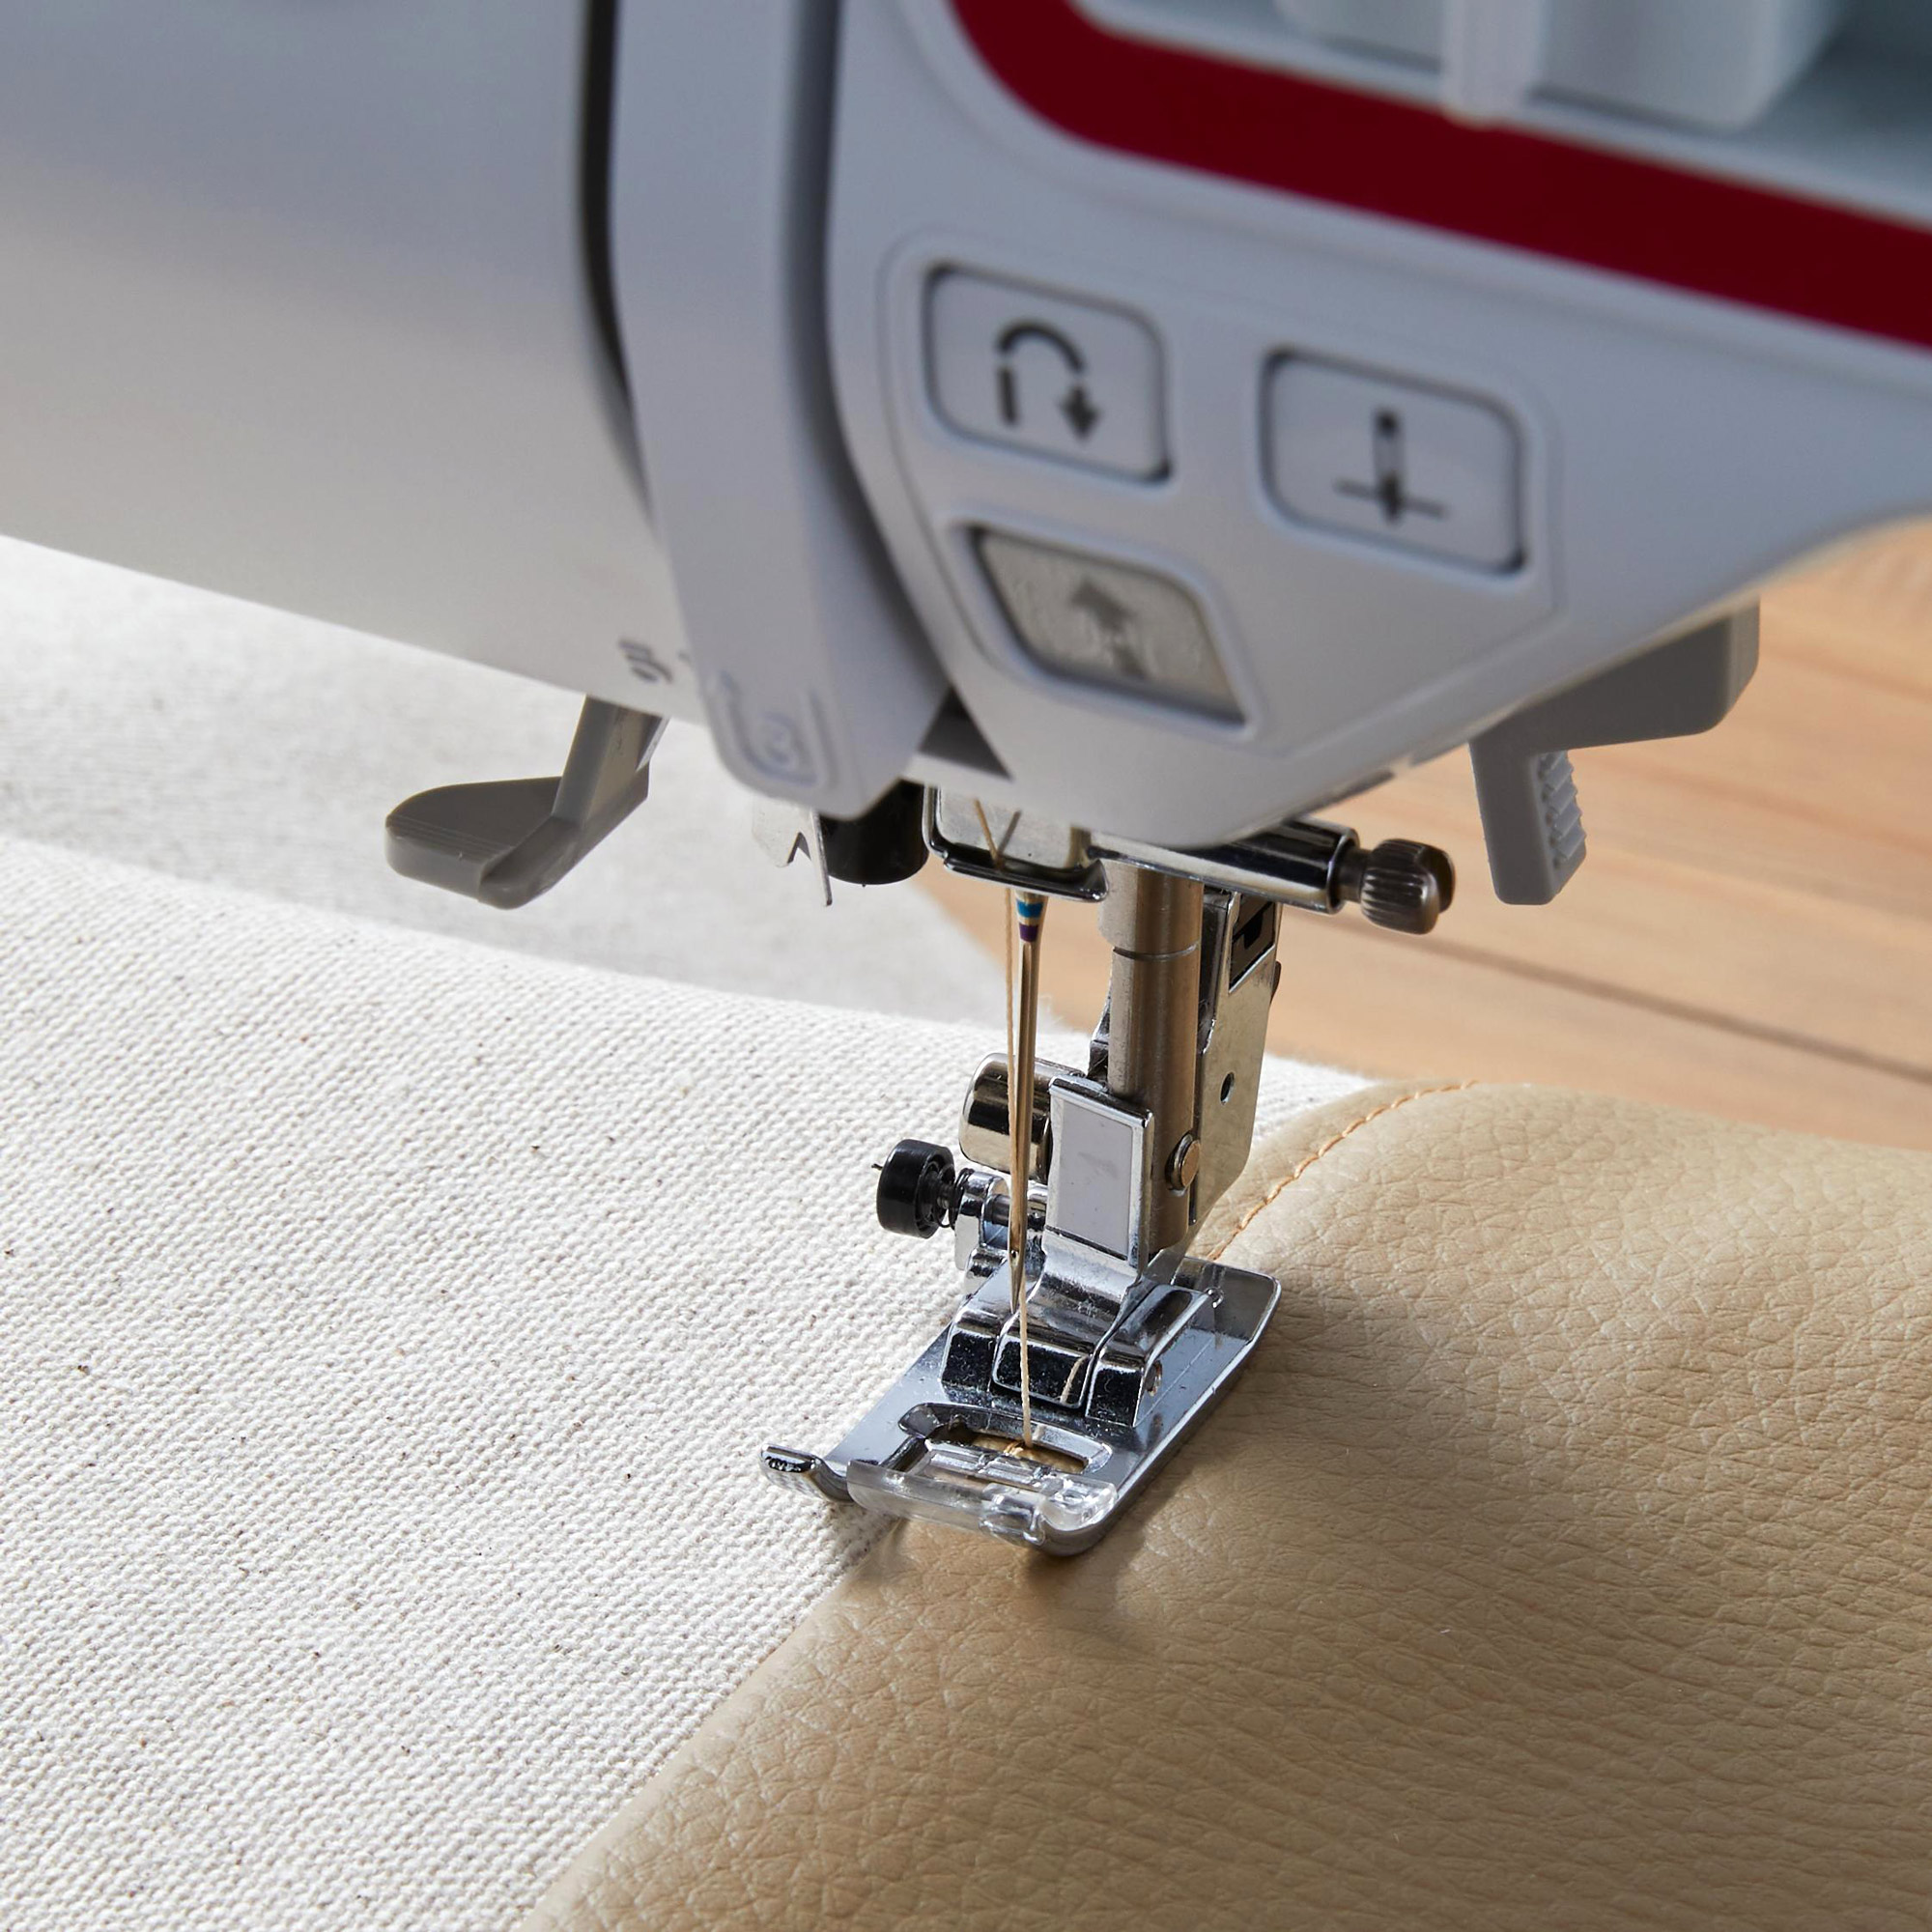 close-up sewing machine sewing leather handle third stitch row